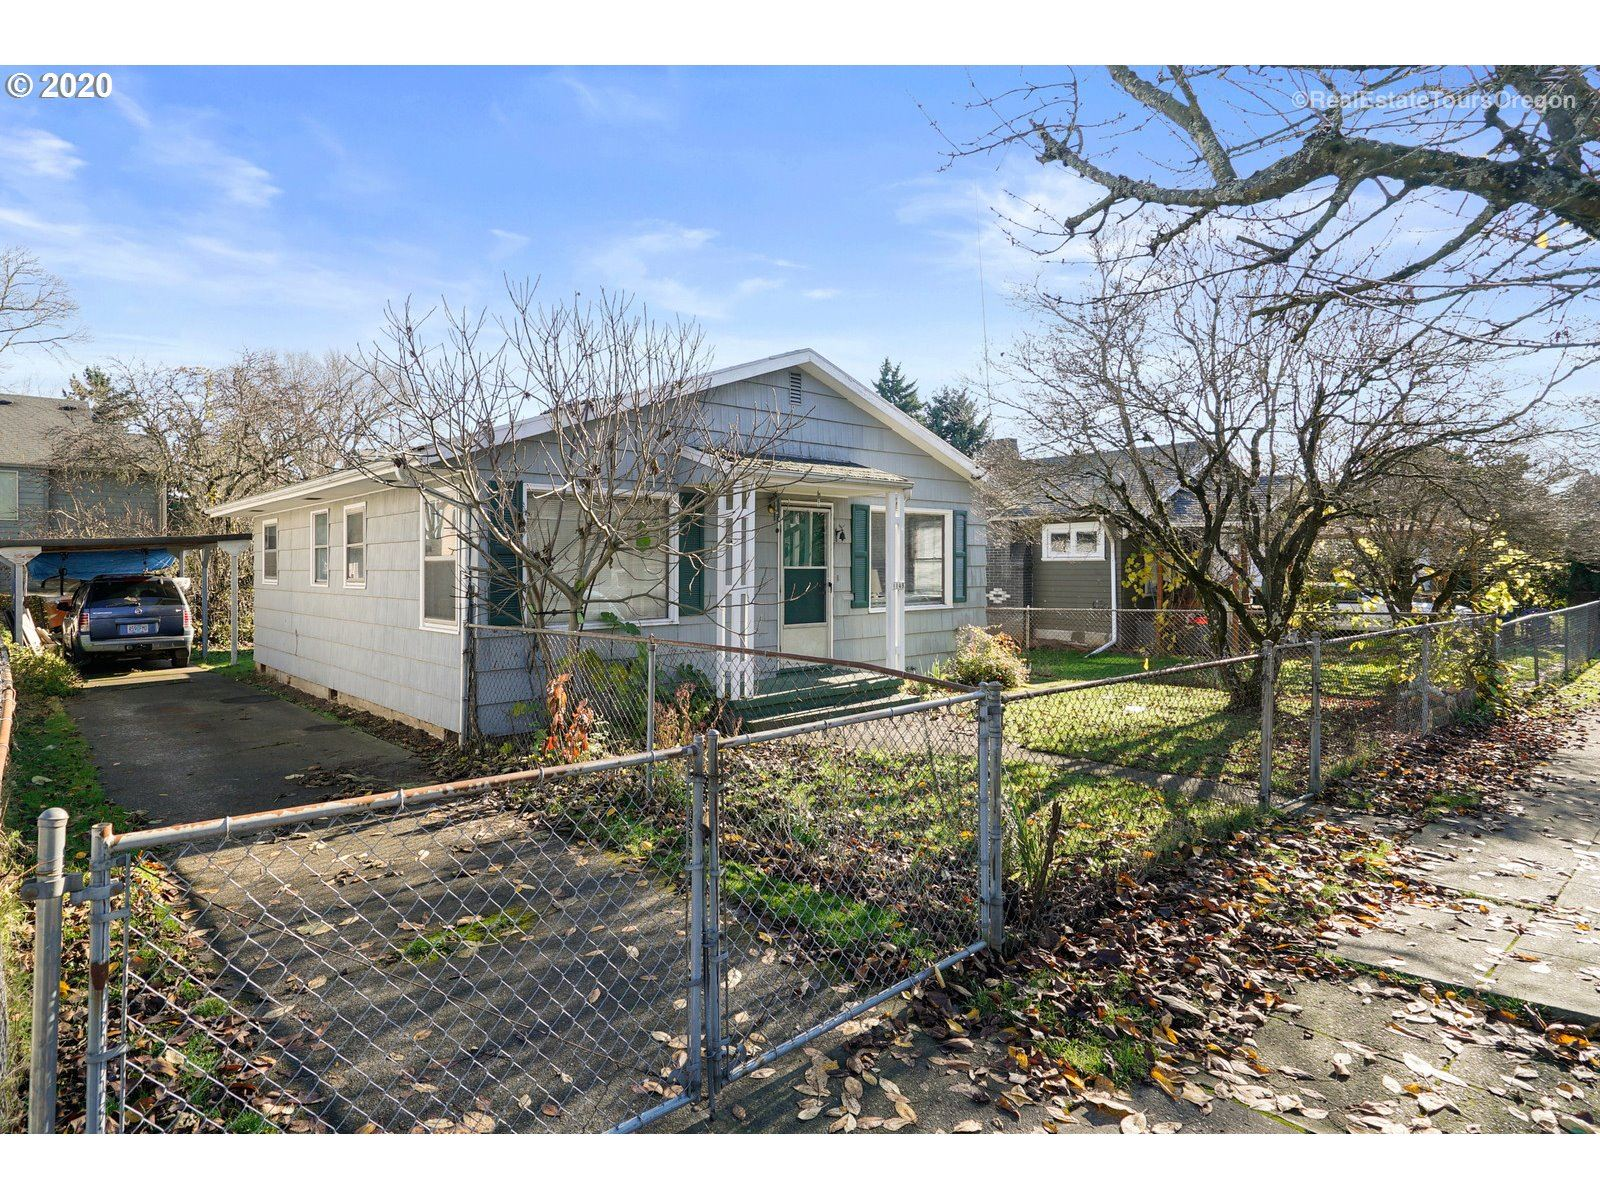 1148 SE 84TH AVE, Portland, OR 97216 - MLS#: 20310844